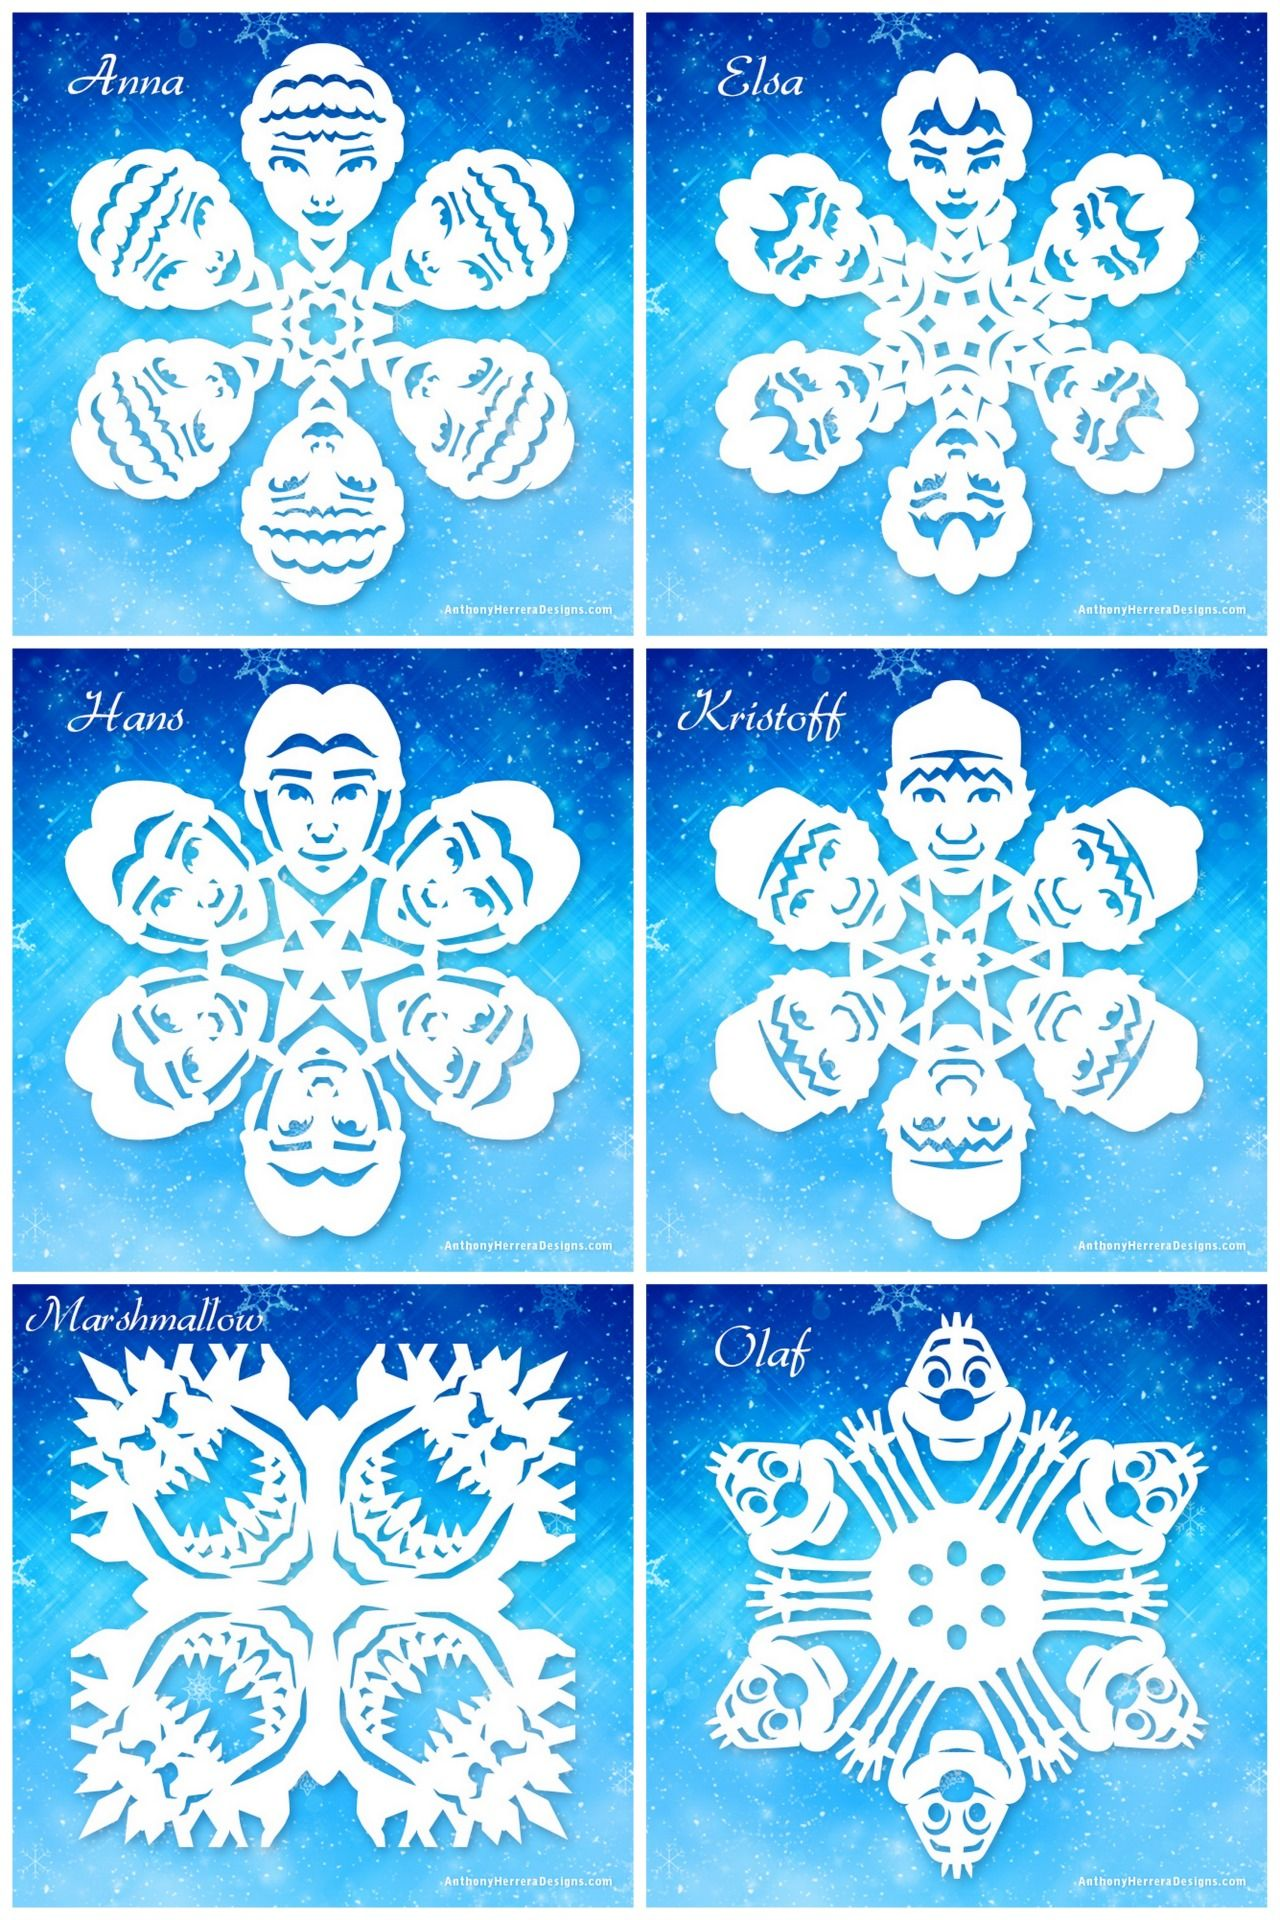 Character Design Pdf Free Download : Diy free frozen snowflakes templates from anthony